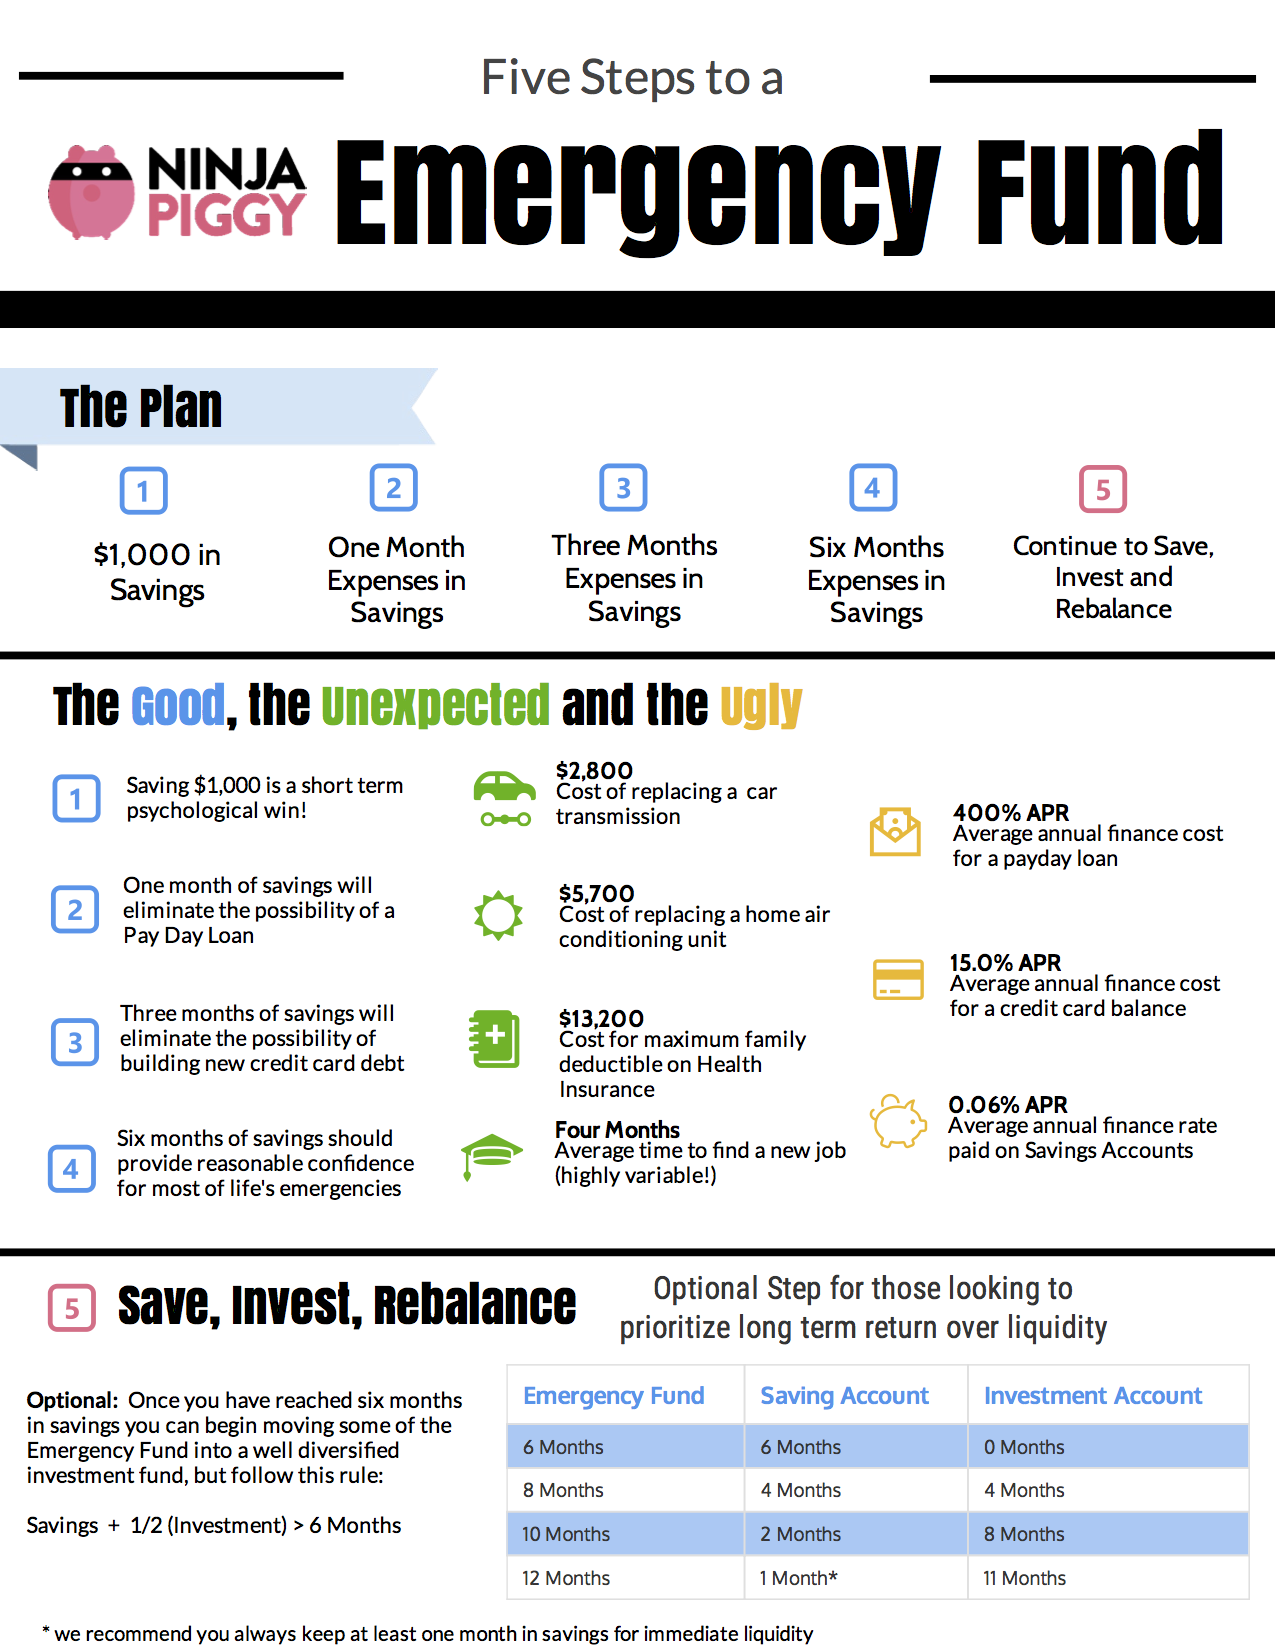 Five Steps to Emergency Fund